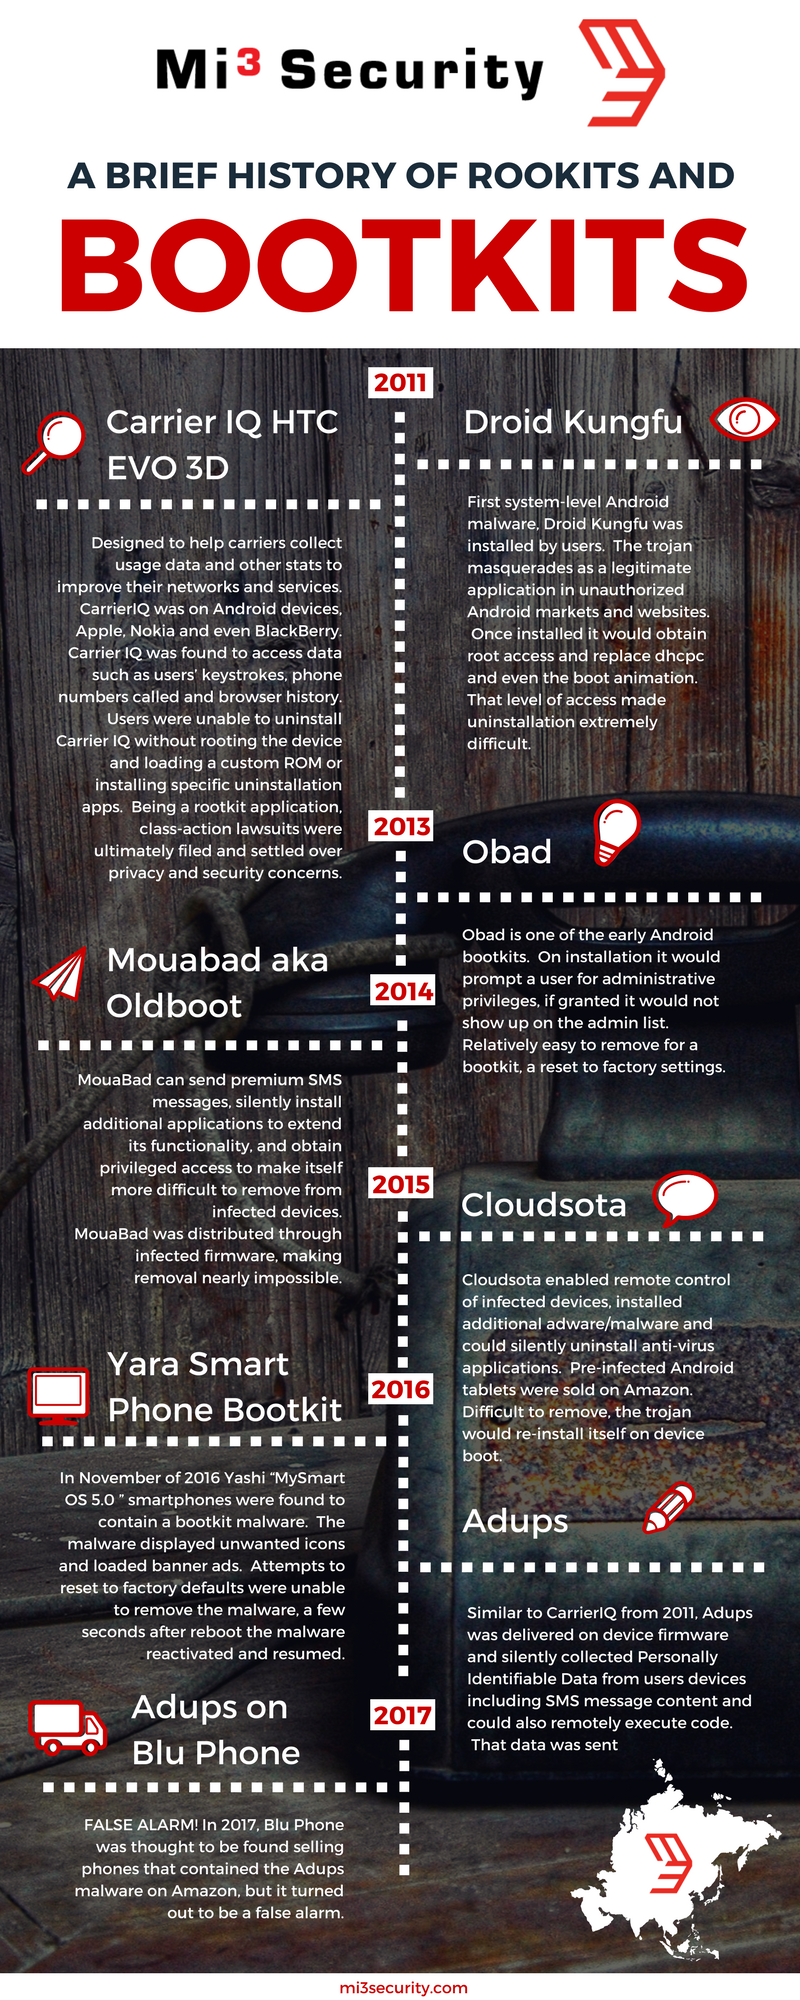 Mi3 Security Bootkit Infographic.png